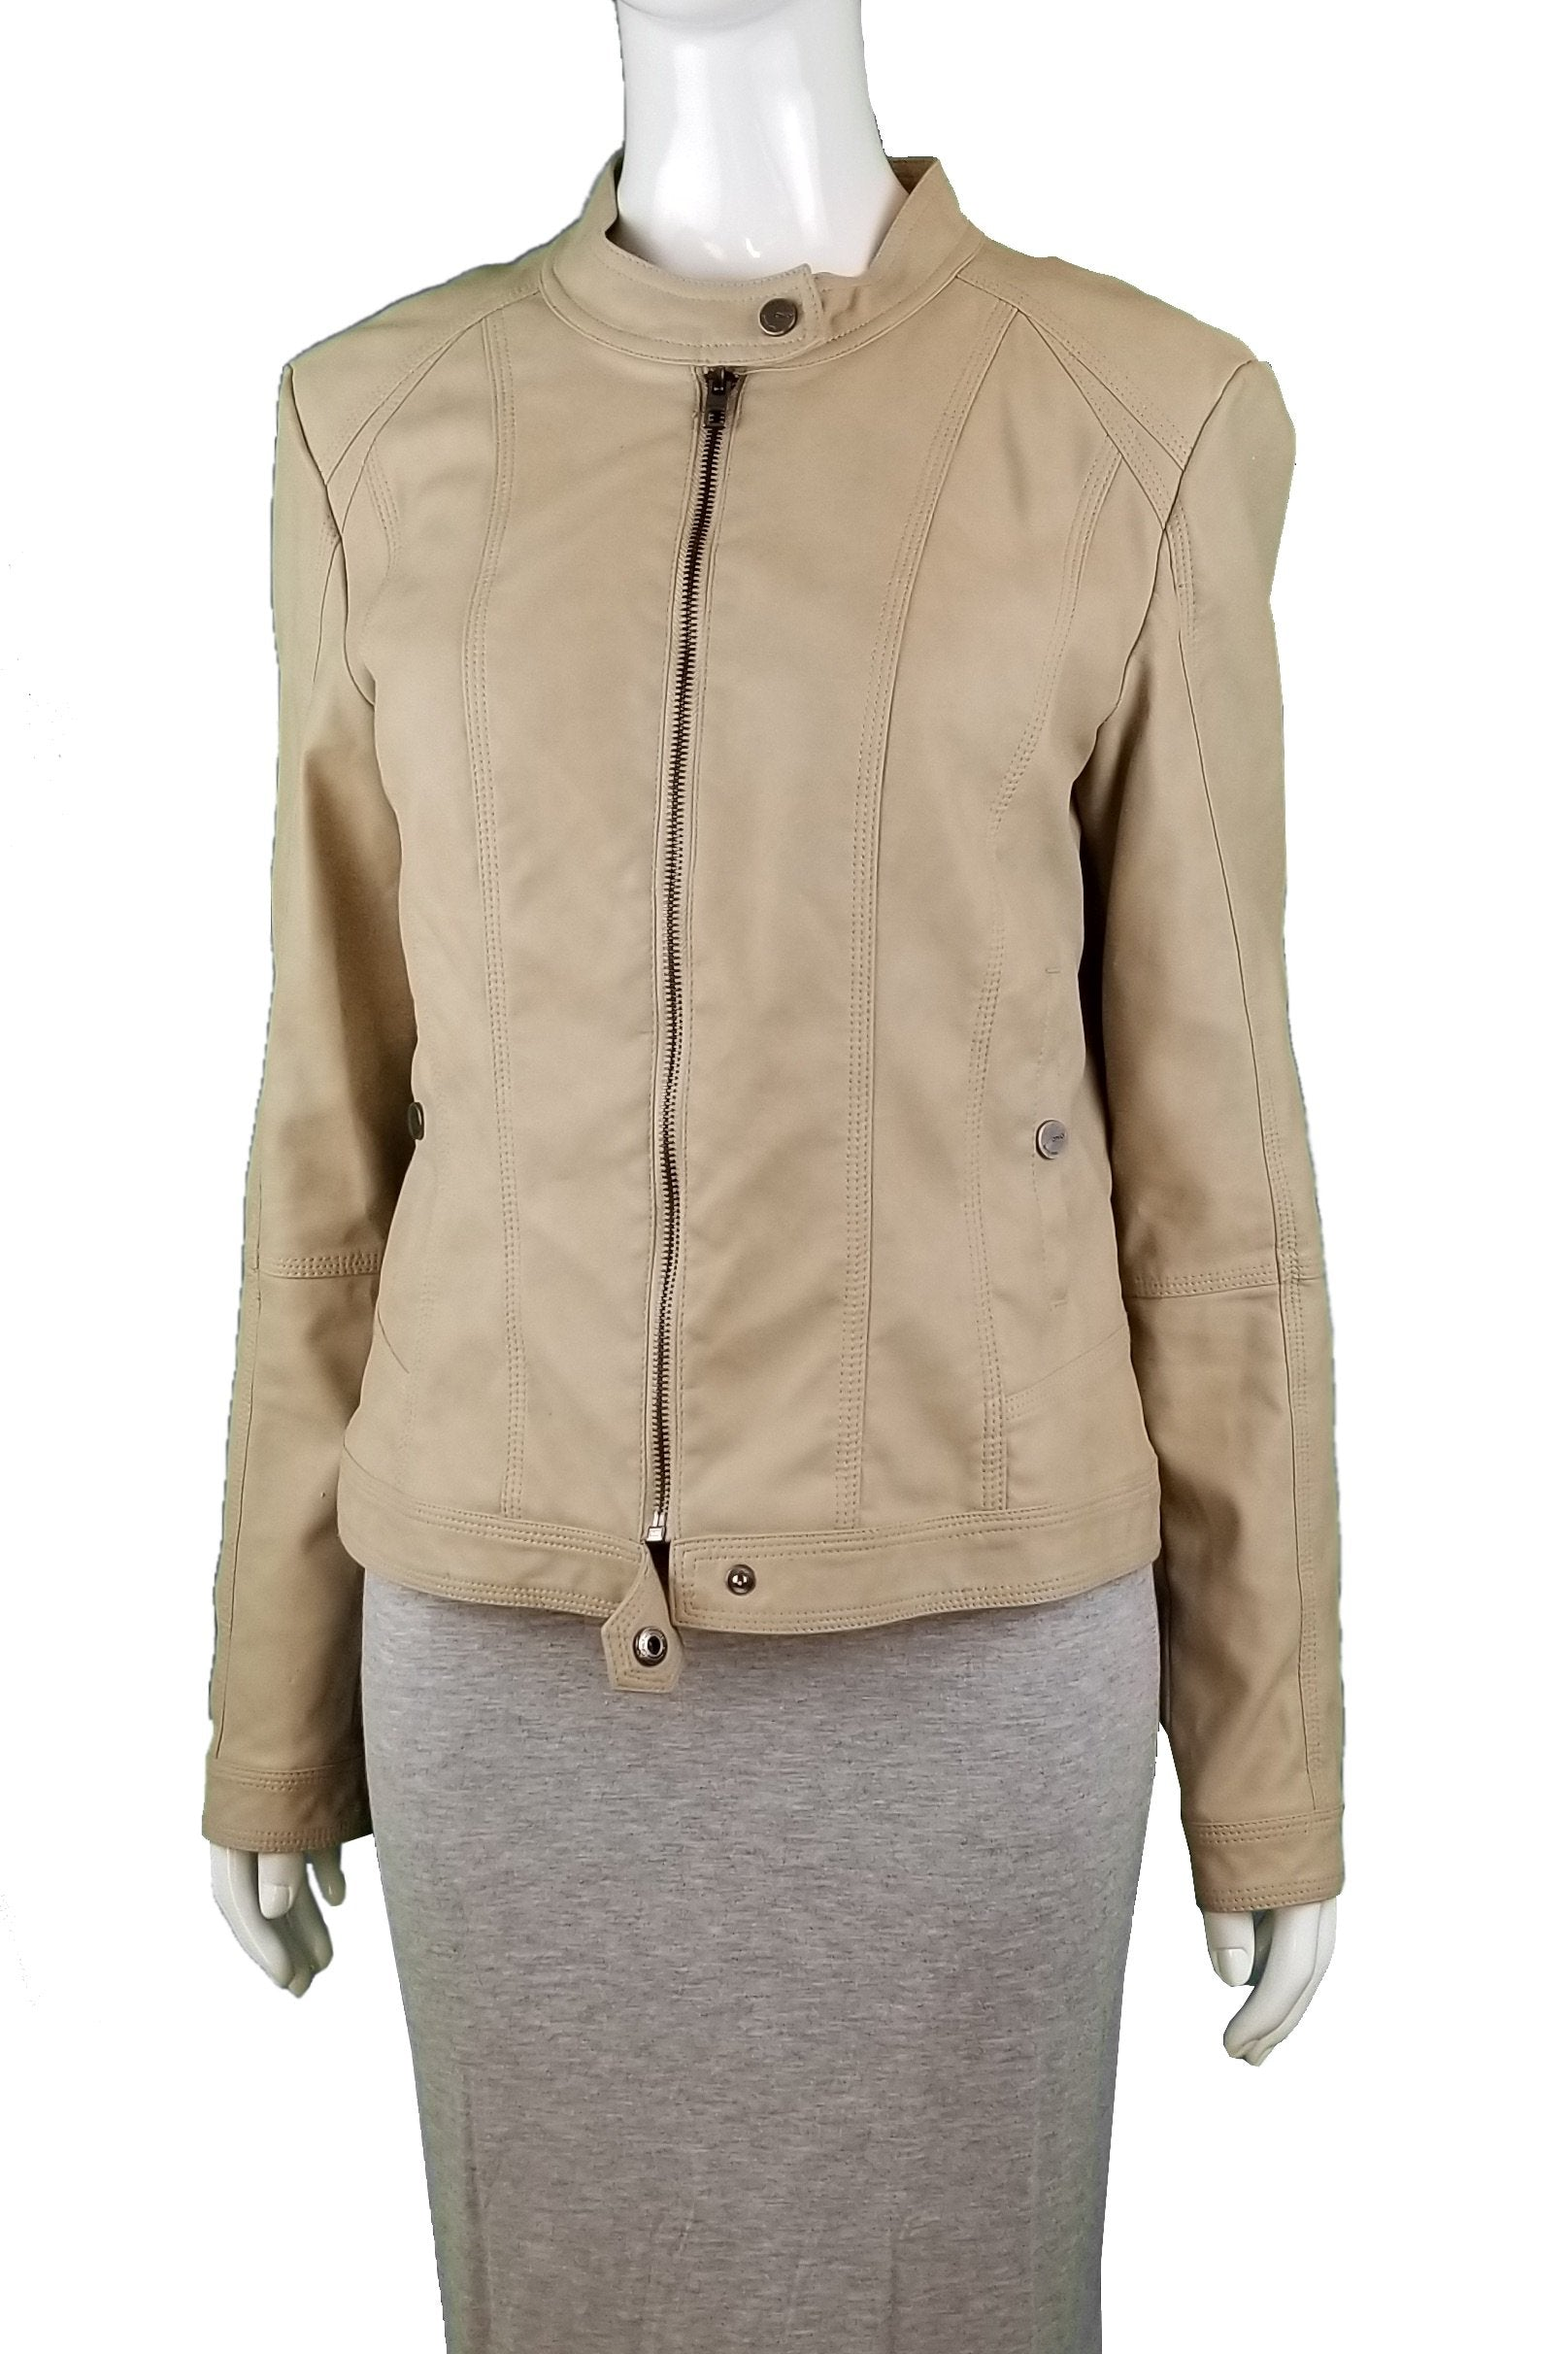 ONLY Faux Leather Jacket, Unique light color leather jacket, soft to the touch, Tan, Brown, Shell: 50% Polyurethane, 50% Viscose. Lining: 100% Polyester, women's Jackets & Coats, women's Tan, Brown Jackets & Coats, ONLY women's Jackets & Coats, women's leather moto jacket, ONLY women's jacket, women's leather coat